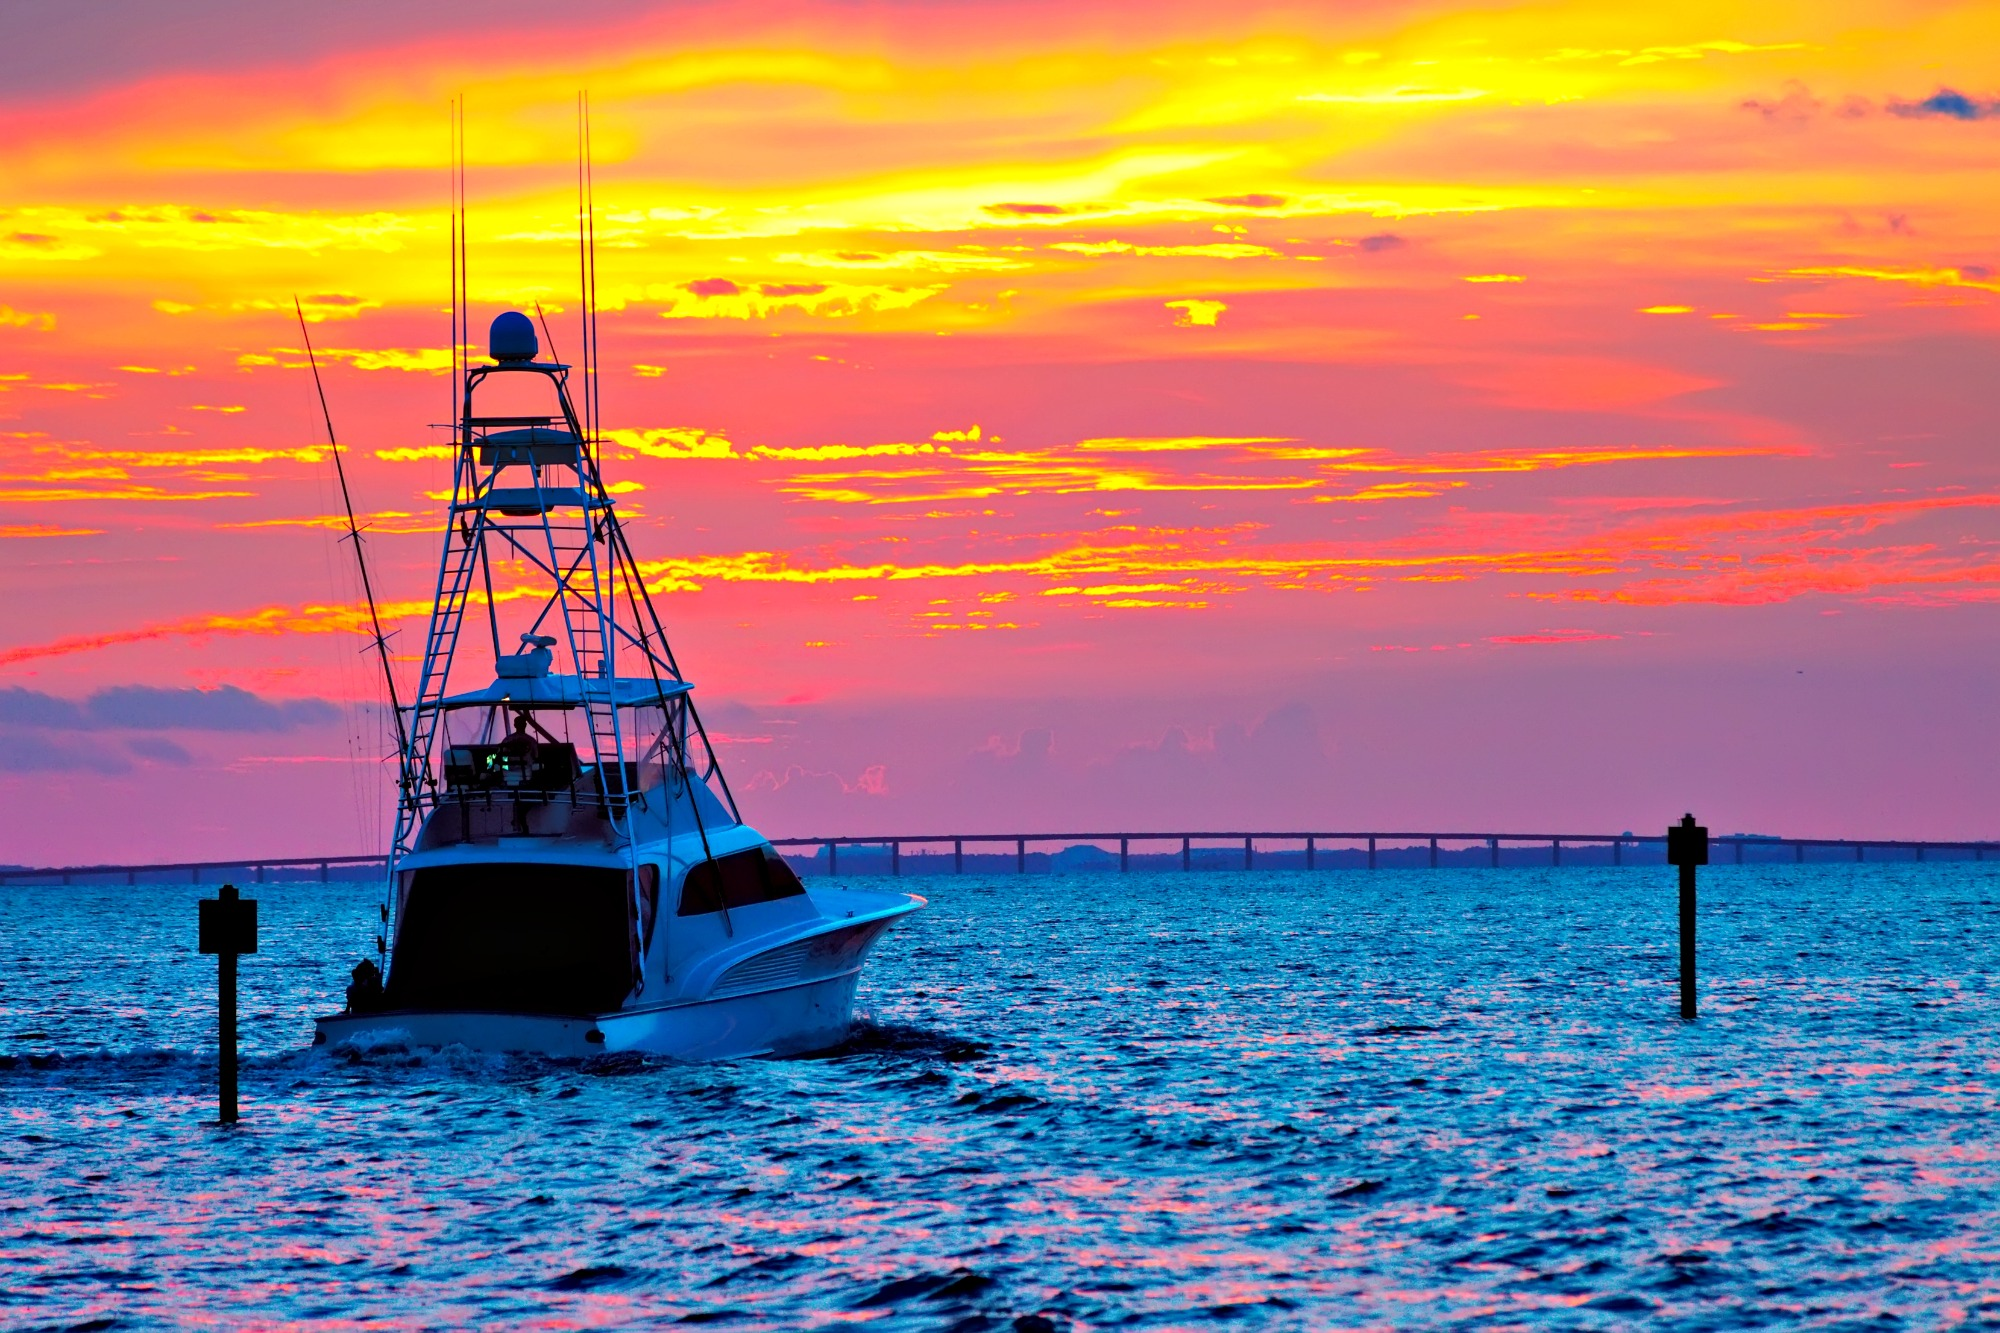 Gulf coast fishing in northwest florida and alabama a for Best time to go deep sea fishing in the gulf